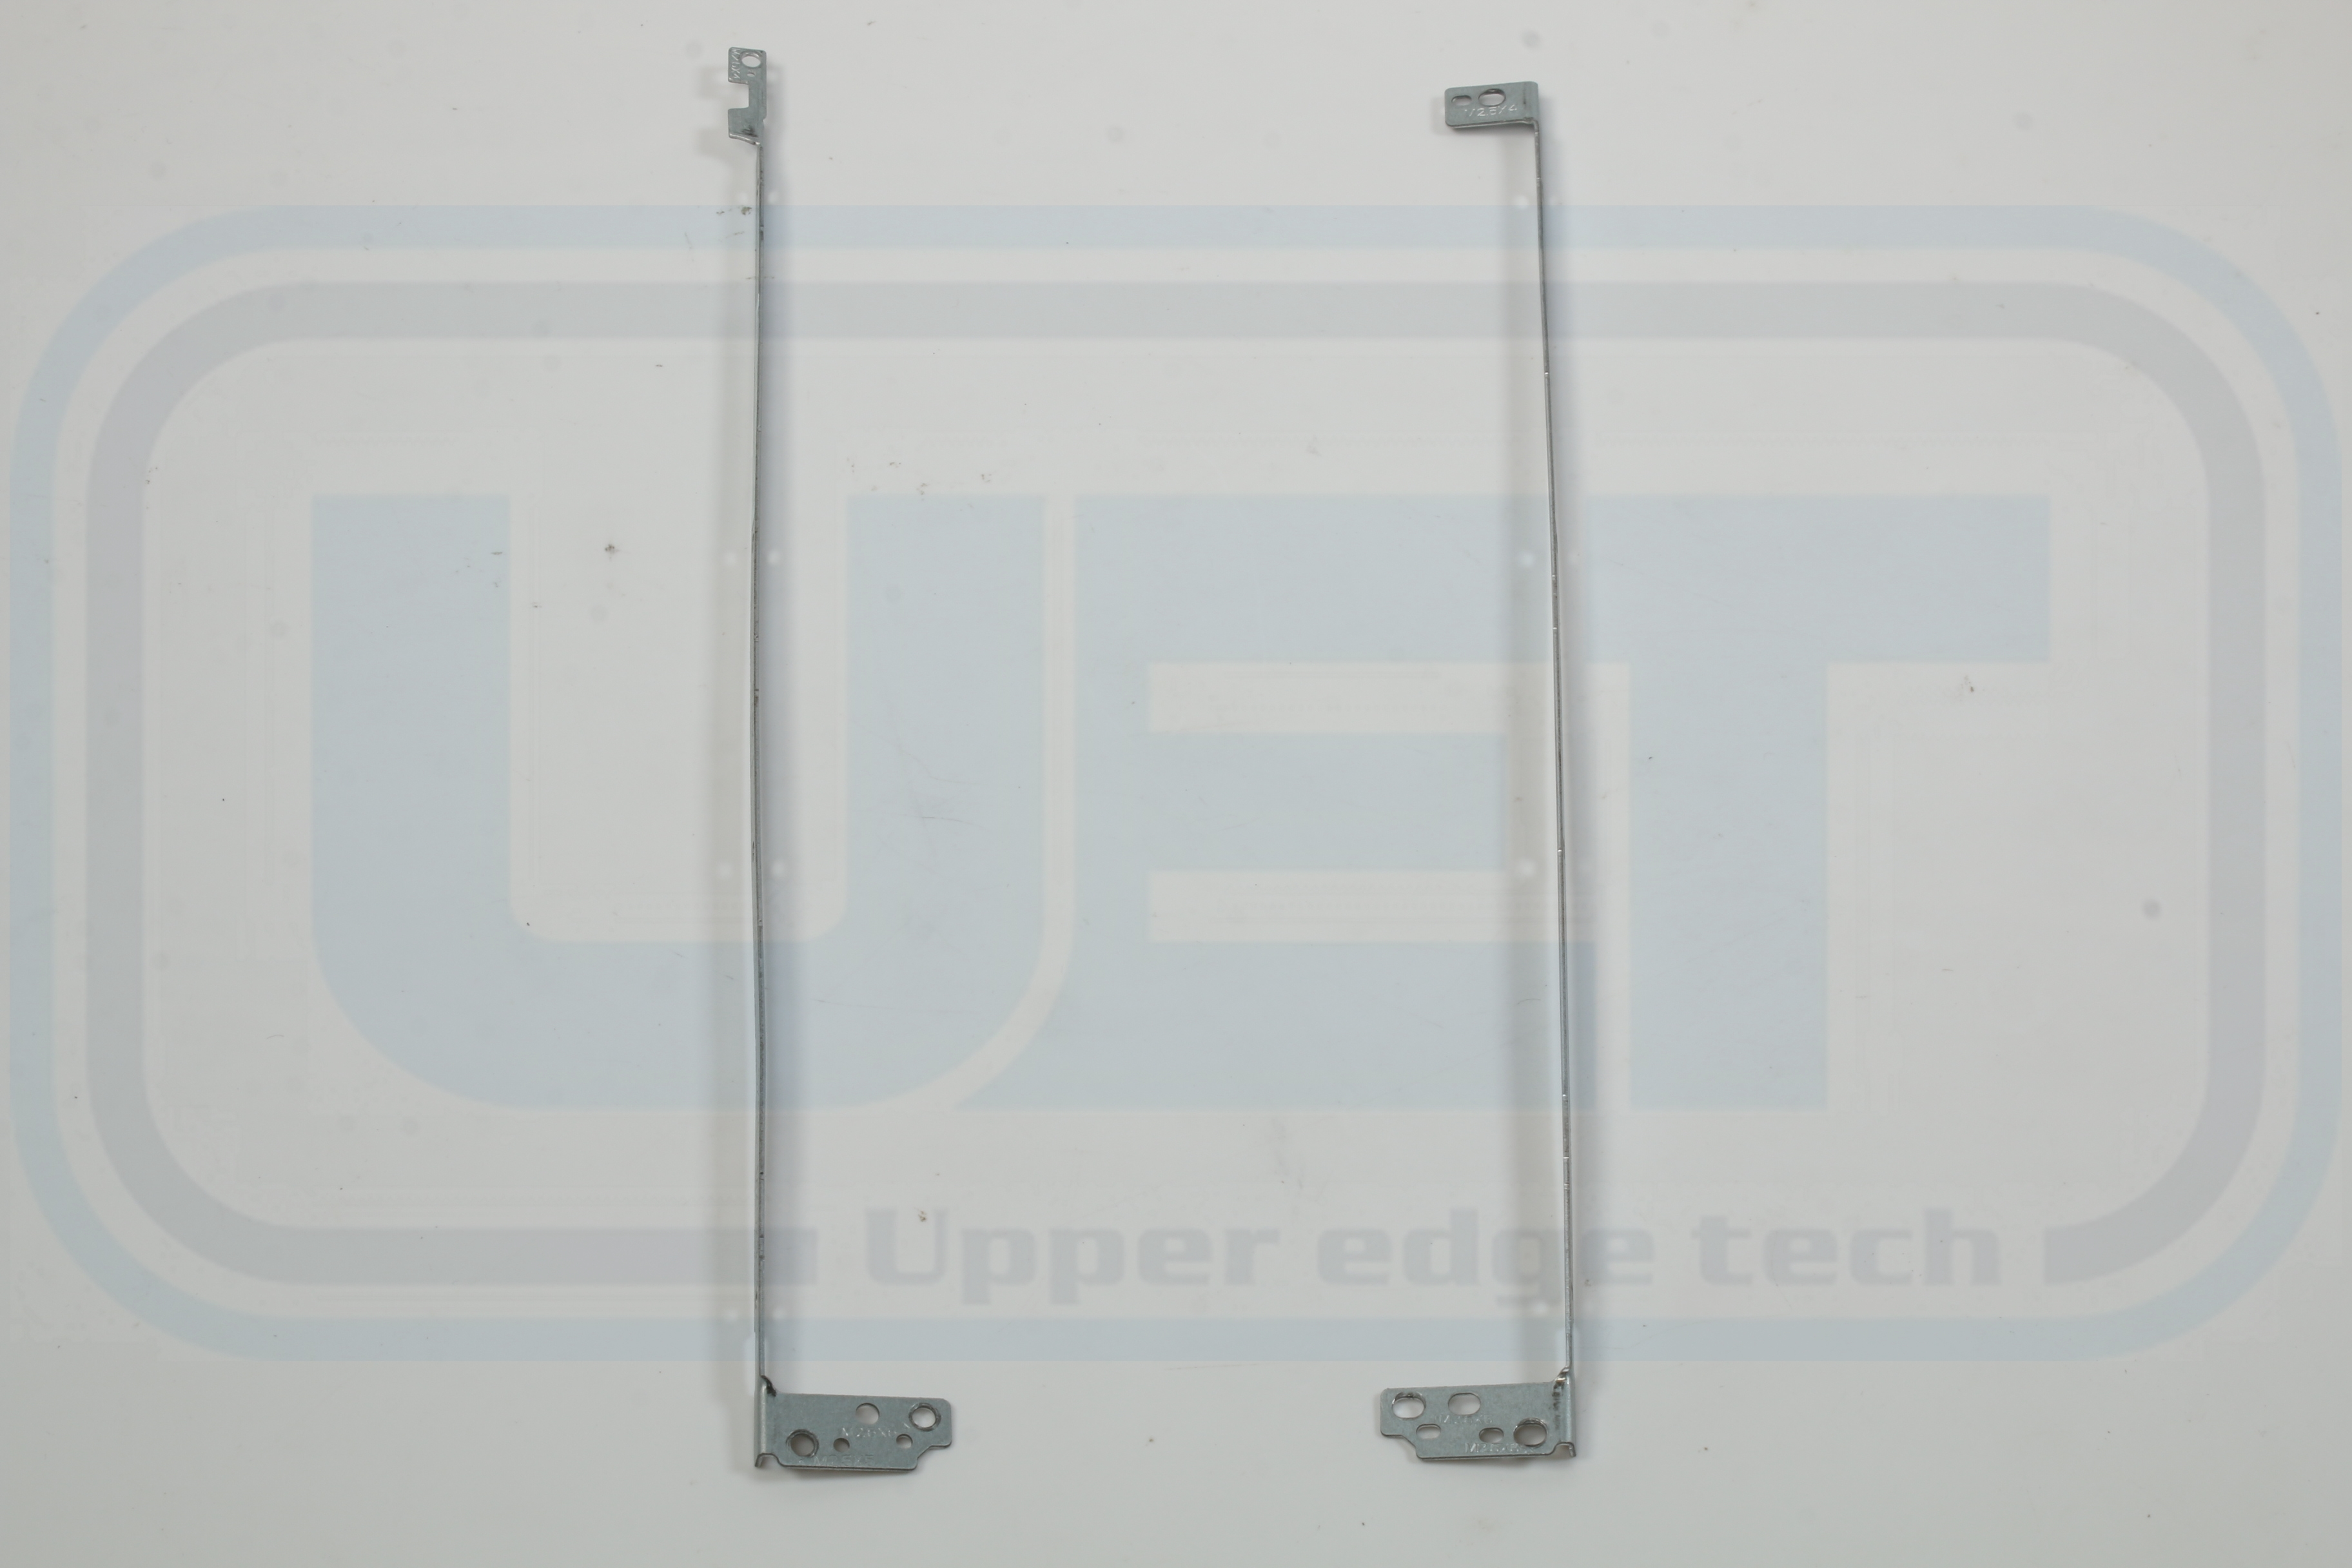 Details about HP Elitebook 8570P 2T711FM00GGSG13040 Left & Right LCD  Bracket Tested Warranty